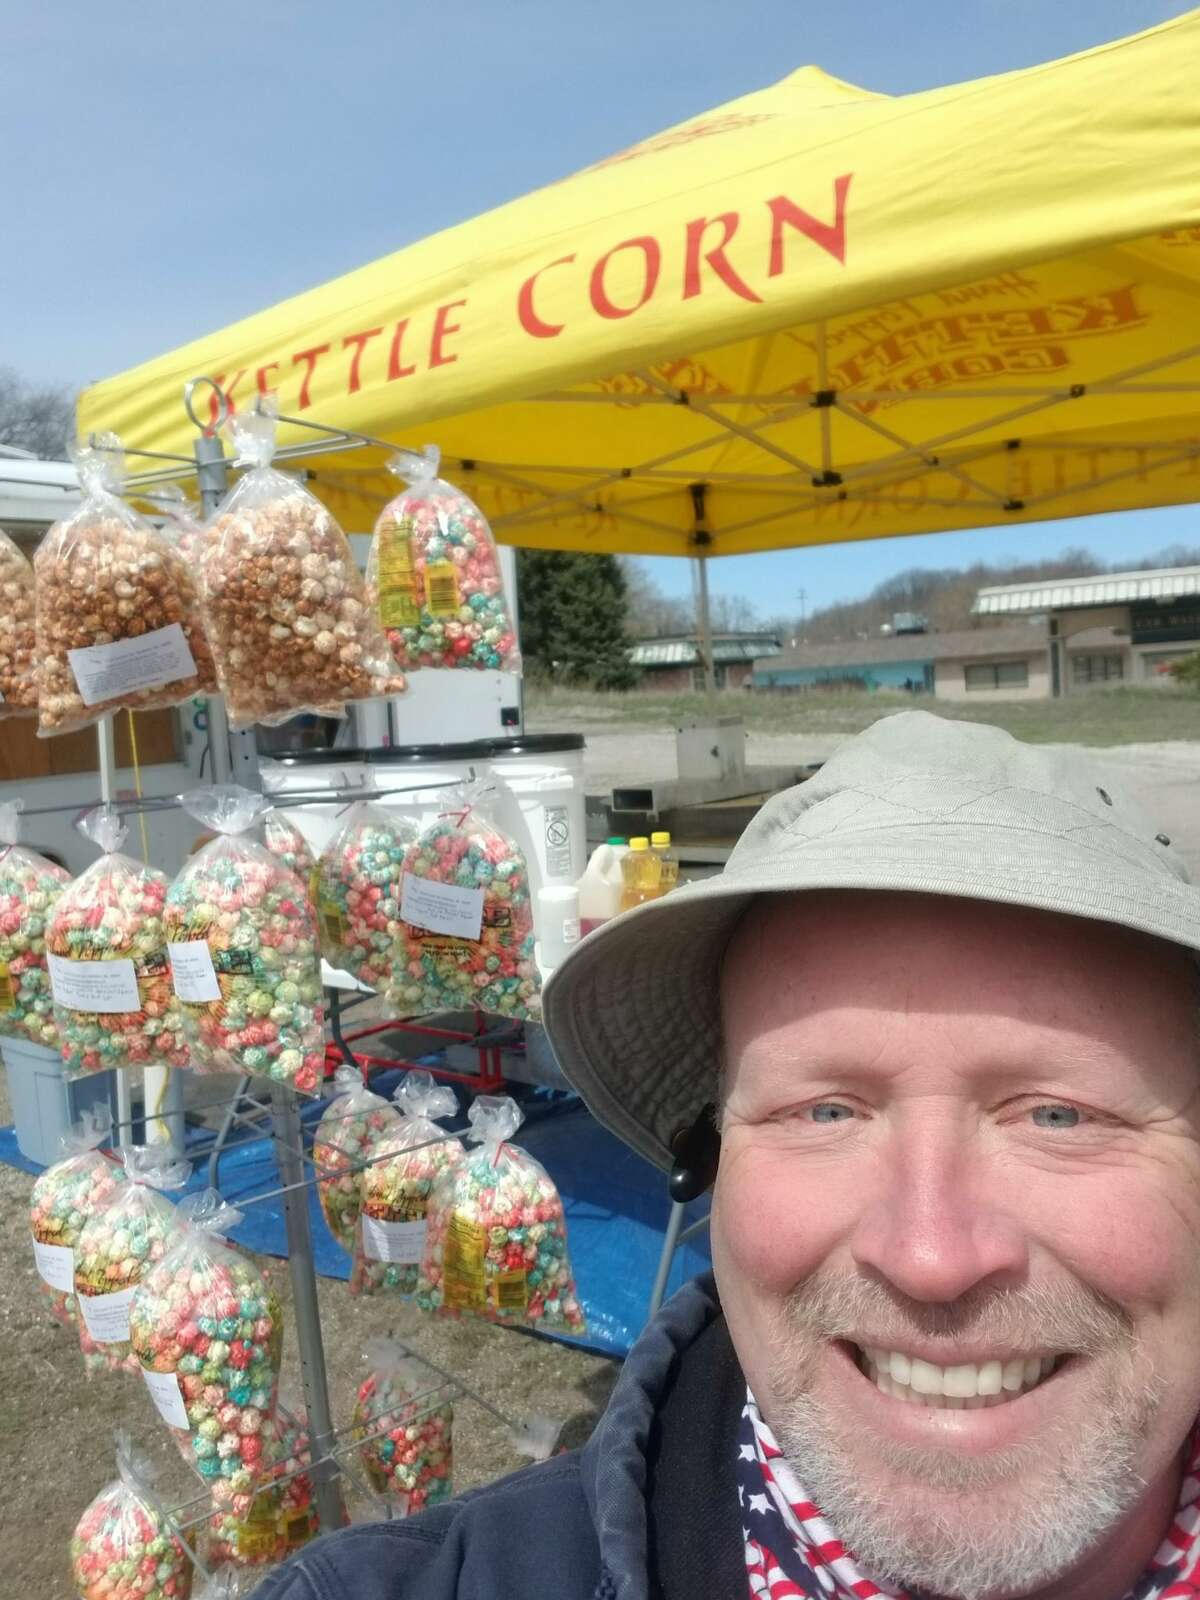 Chris Bush, owner of the Popcorn Goblin kettle corn wagon, said he tries to incorporate as many local ingredients as possible with sourcing of spice blends from Manistee and certain corn grown in Midland. (Courtesy photo)